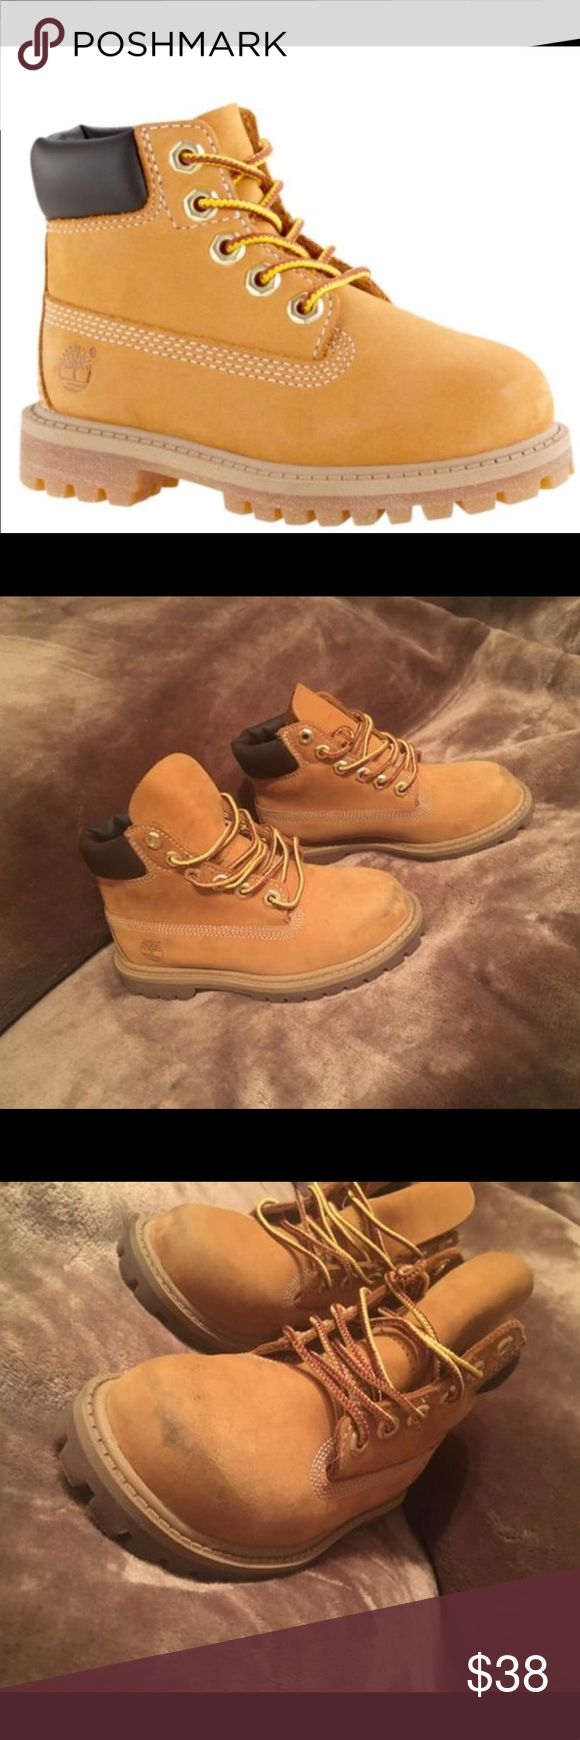 Toddler Timberland Boots Gently worn about 3 times max, minimal dirt stains on front of boot, but removable with the appropriate care. Like new condition. As cute as these shoes are my son didn't like them and is no longer a size 10! 🙂 Timberland Shoes Boots